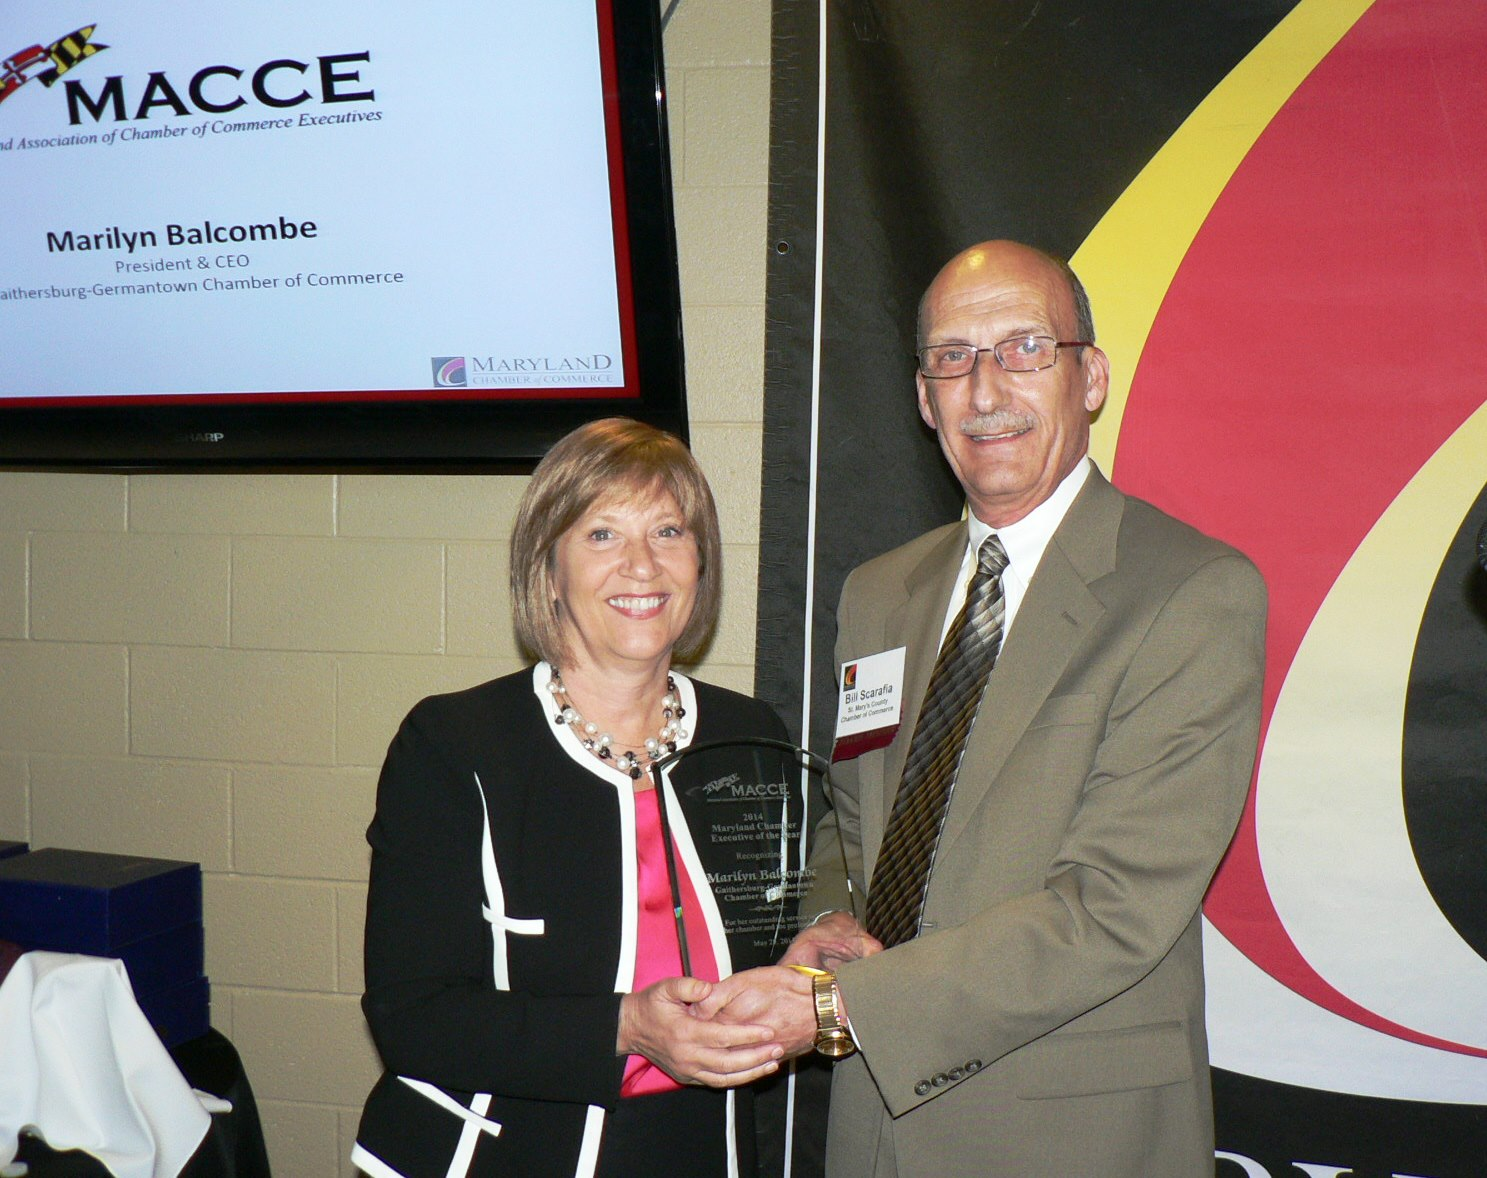 Balcombe Named 2014 Chamber Executive of the Year (PHOTO